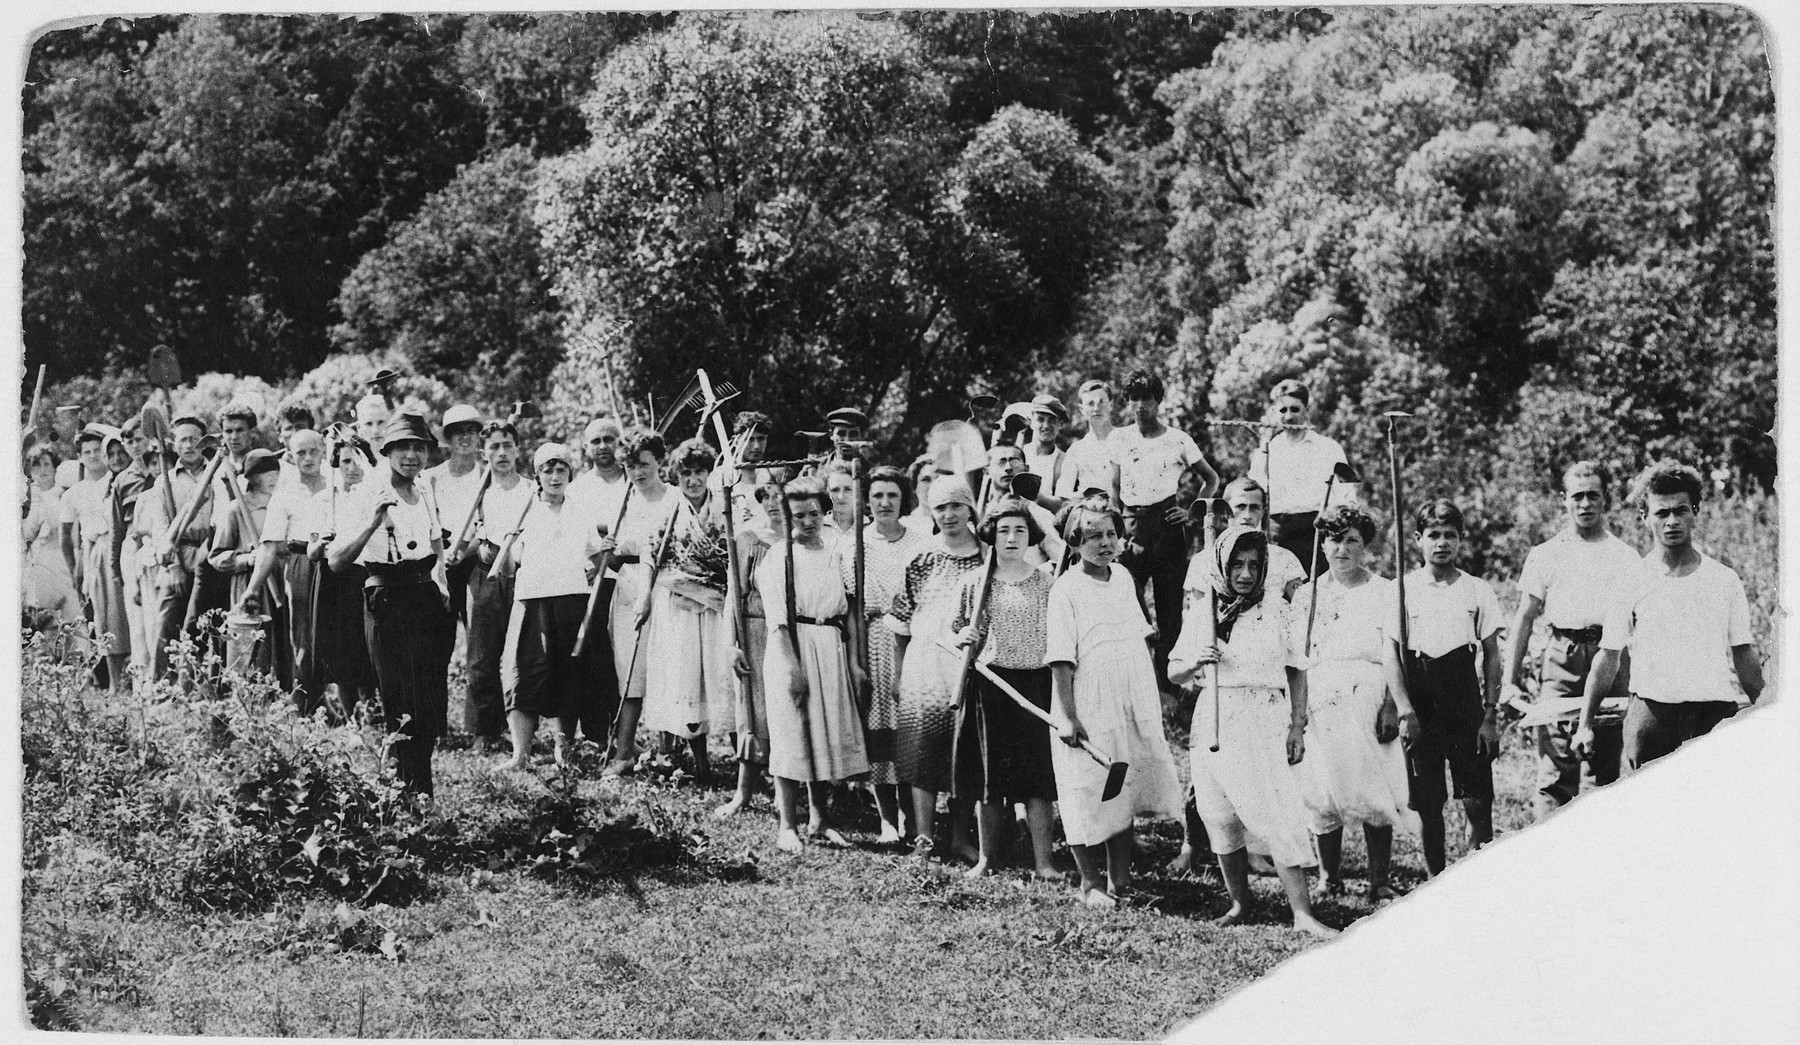 Students from the Vilner Lerer Seminar (Yiddish Teachers' Seminary) go on an excursion to Purzkarnie on the outskirts of Vilna.